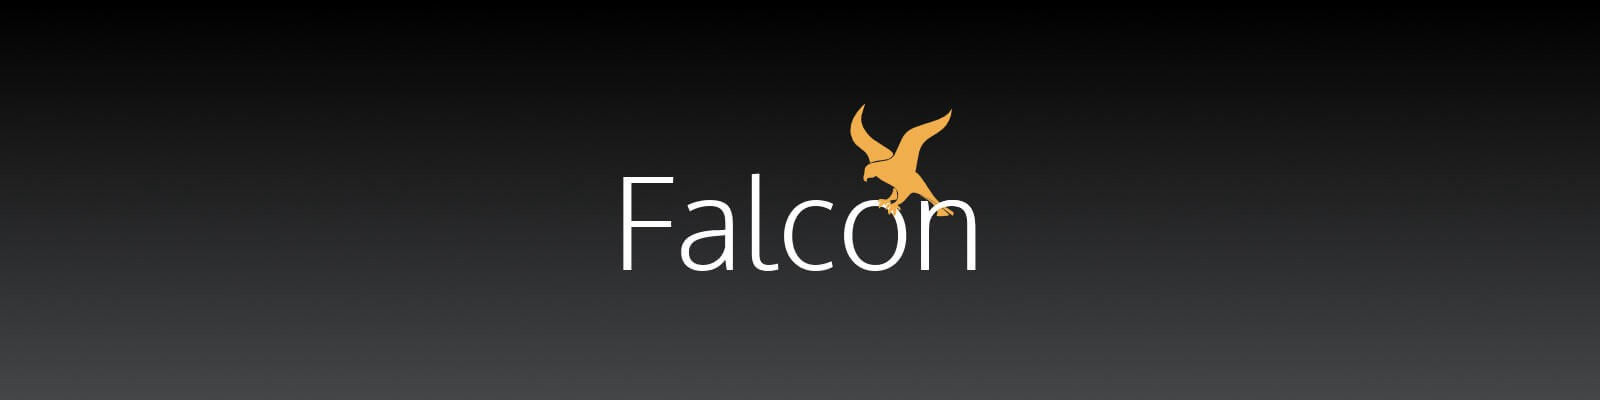 Developing REST APIs in under 50 lines of code using Falcon